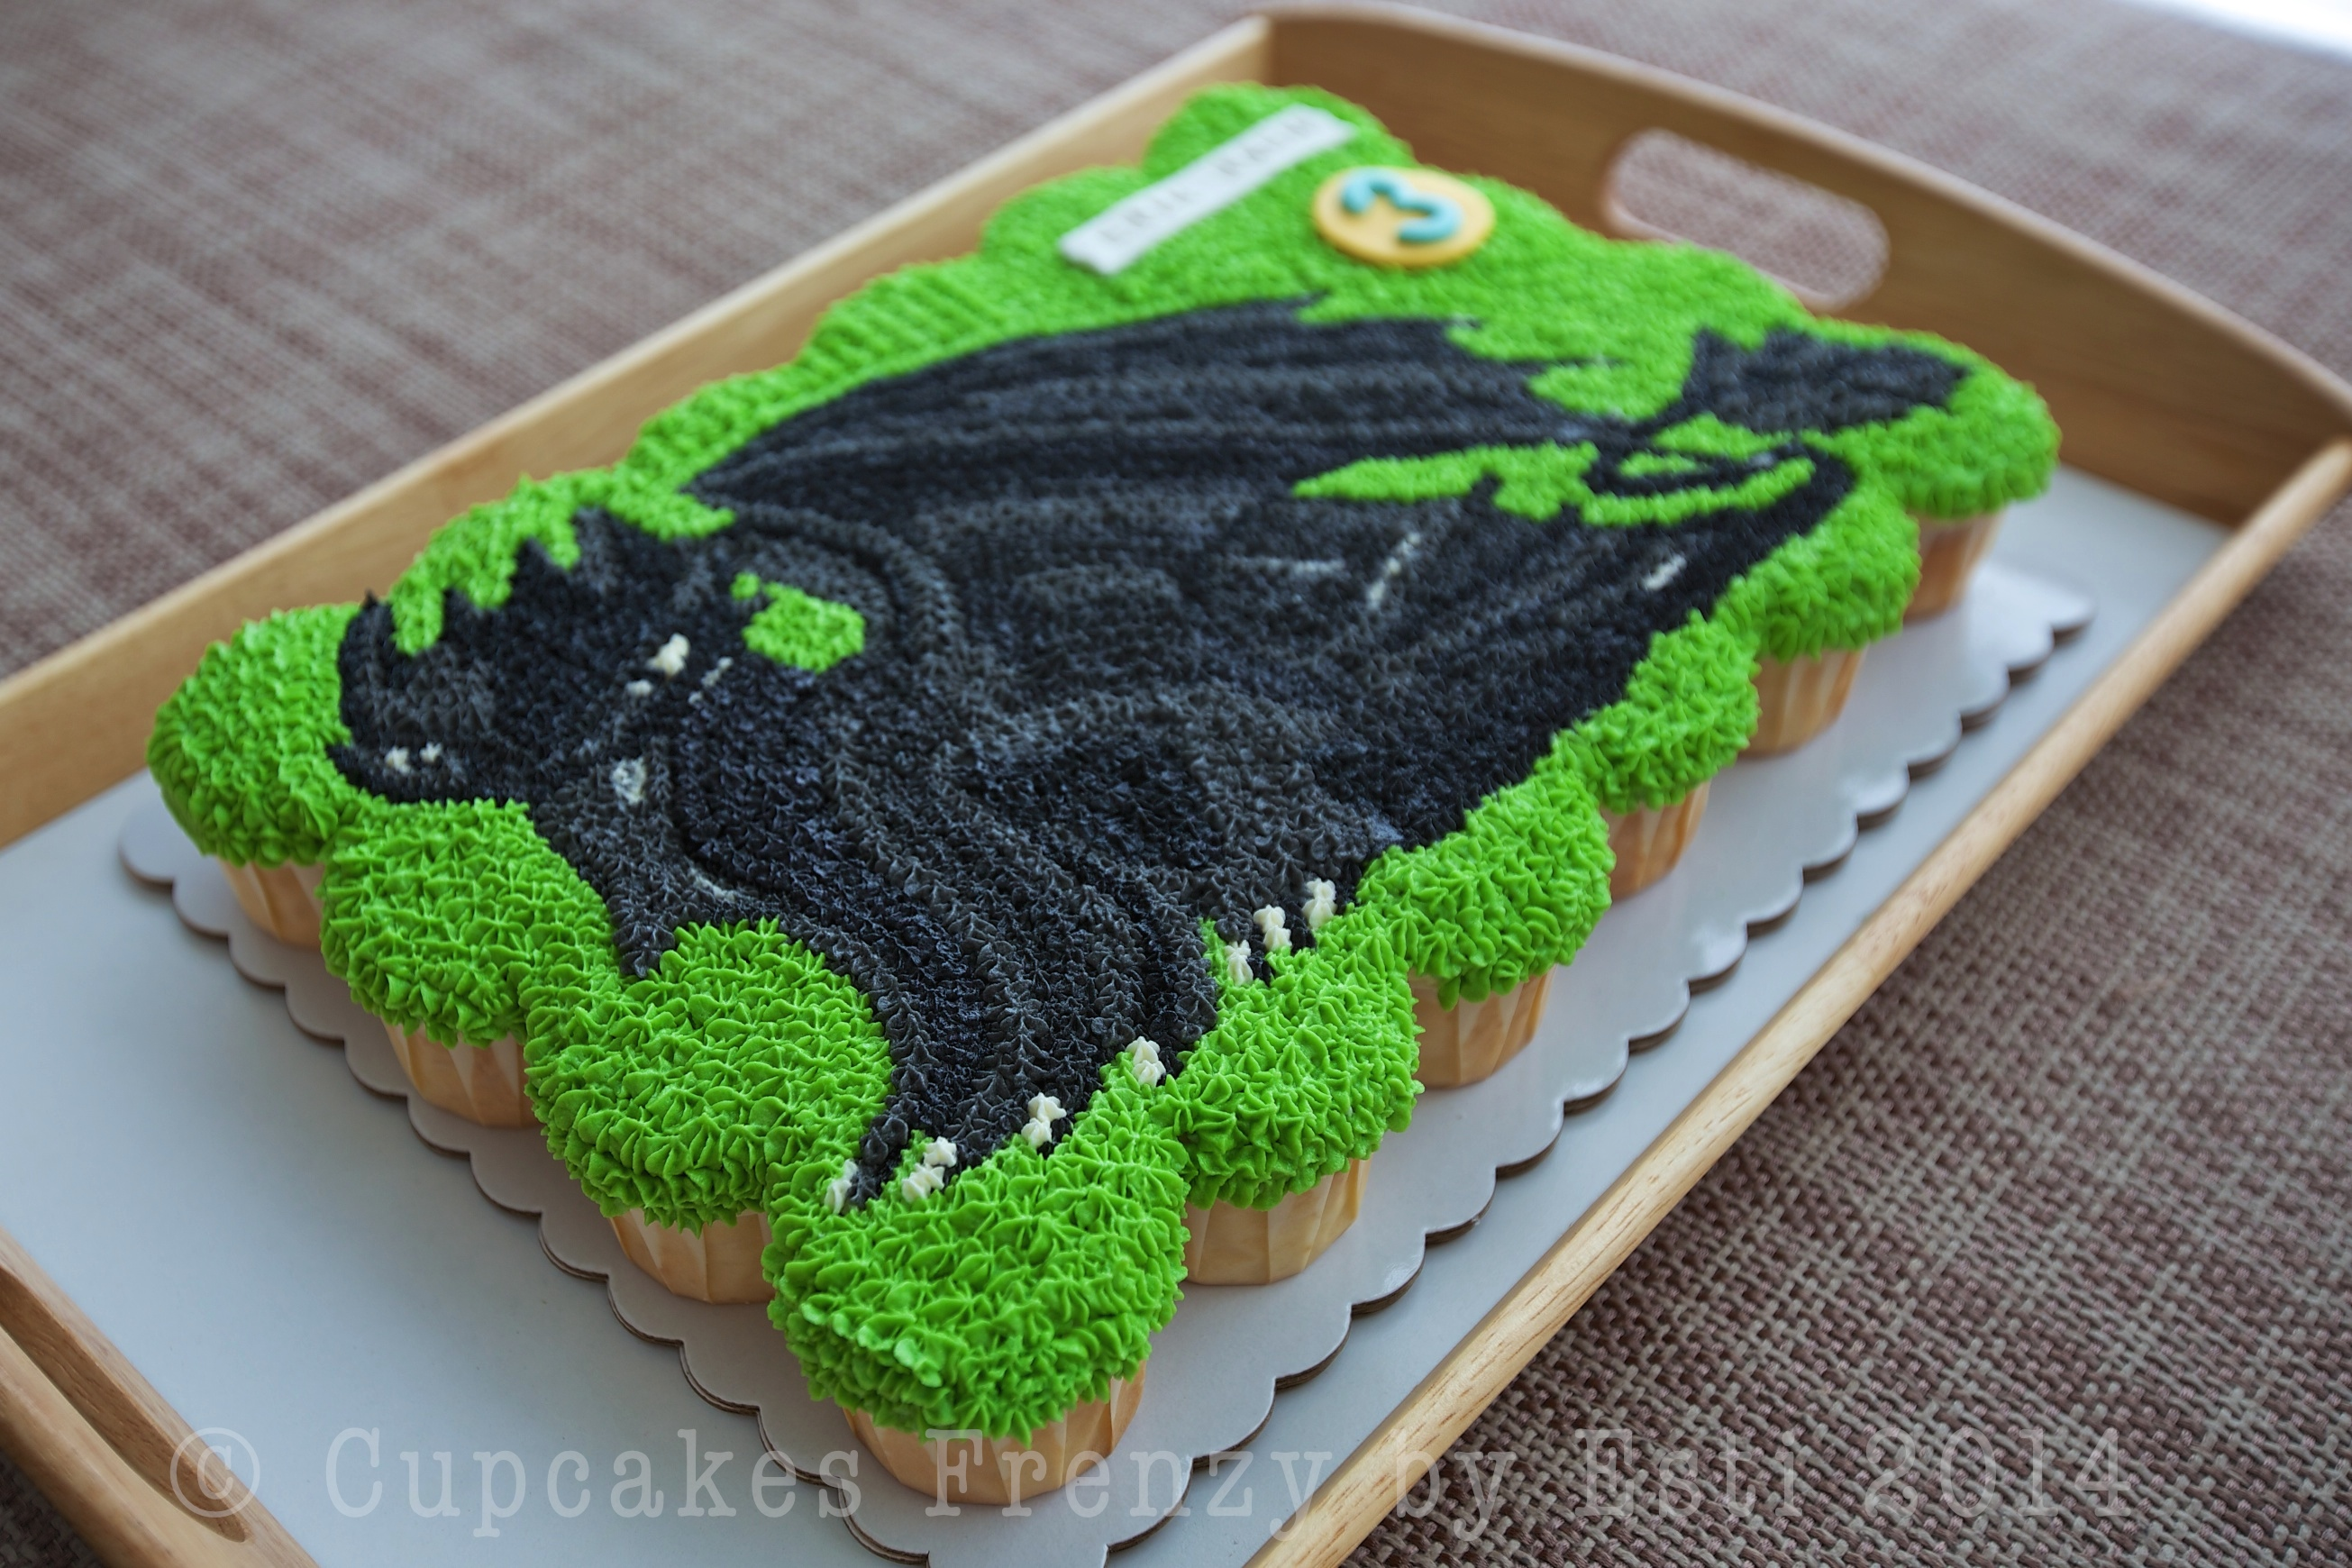 Dragon cupcake cupcakes frenzy toothless 1 have you seen the movie how to train your dragon ccuart Choice Image